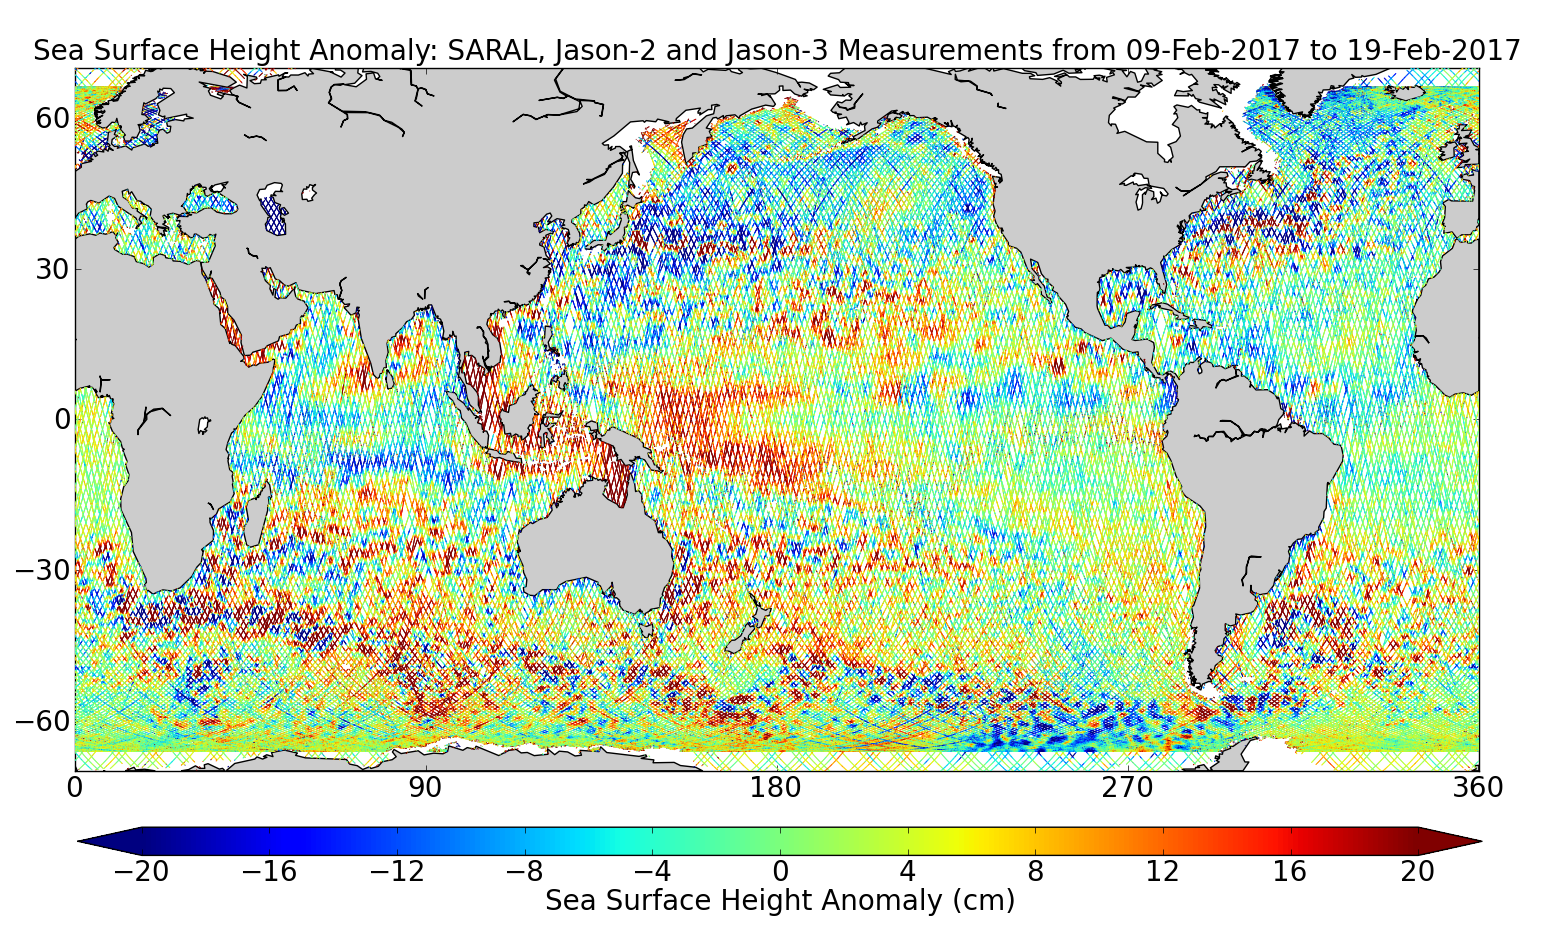 Sea Surface Height Anomaly: SARAL, Jason-2 and Jason-3 Measurements from 09-Feb-2017 to 19-Feb-2017